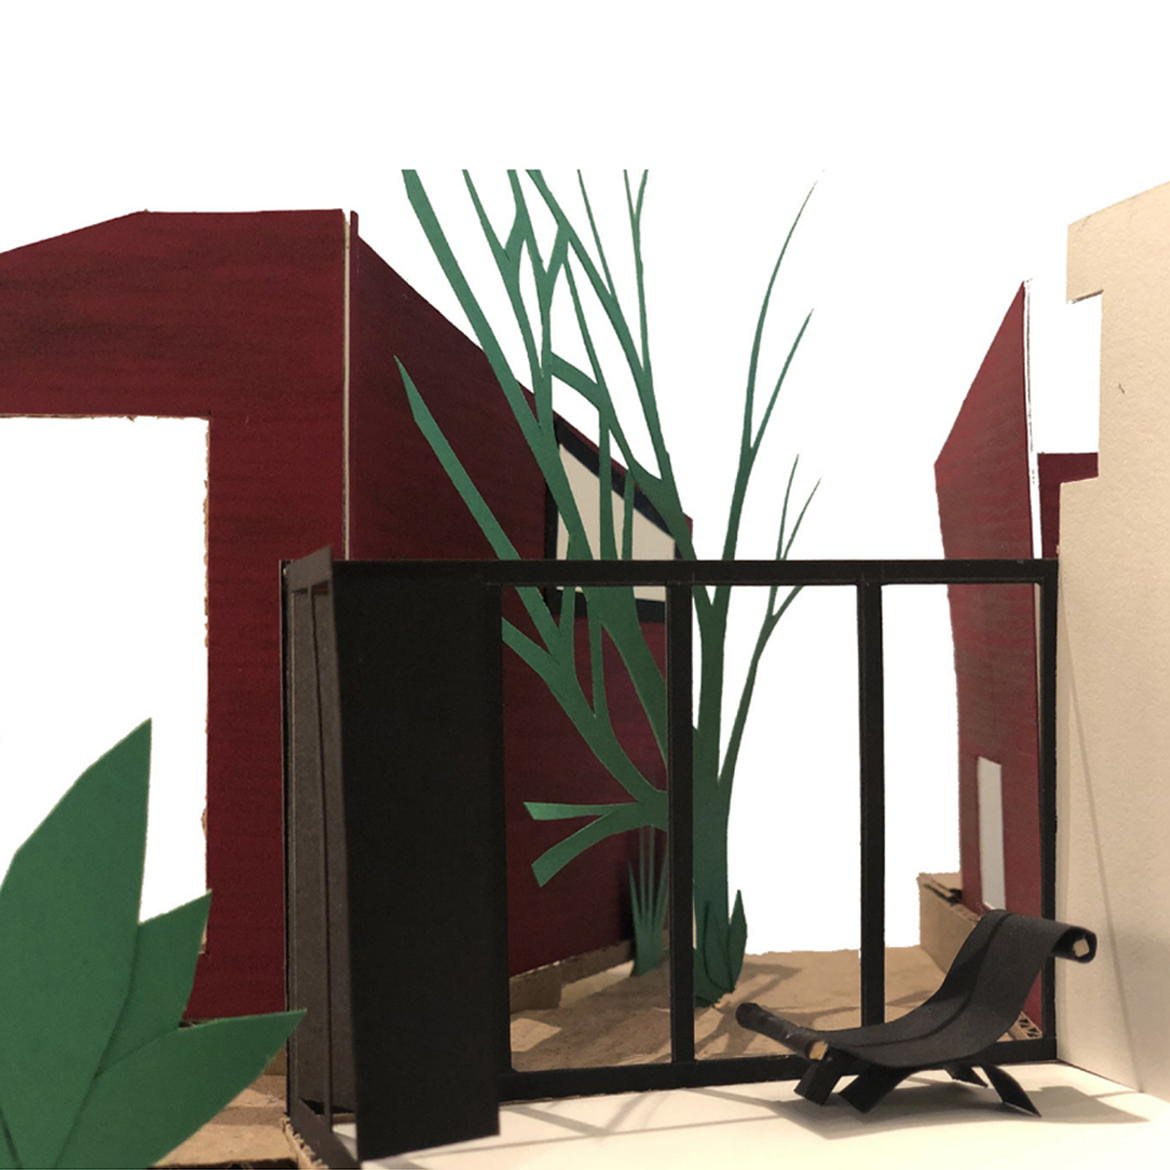 Colored cardboard cutouts showing a building with plants and a chair.